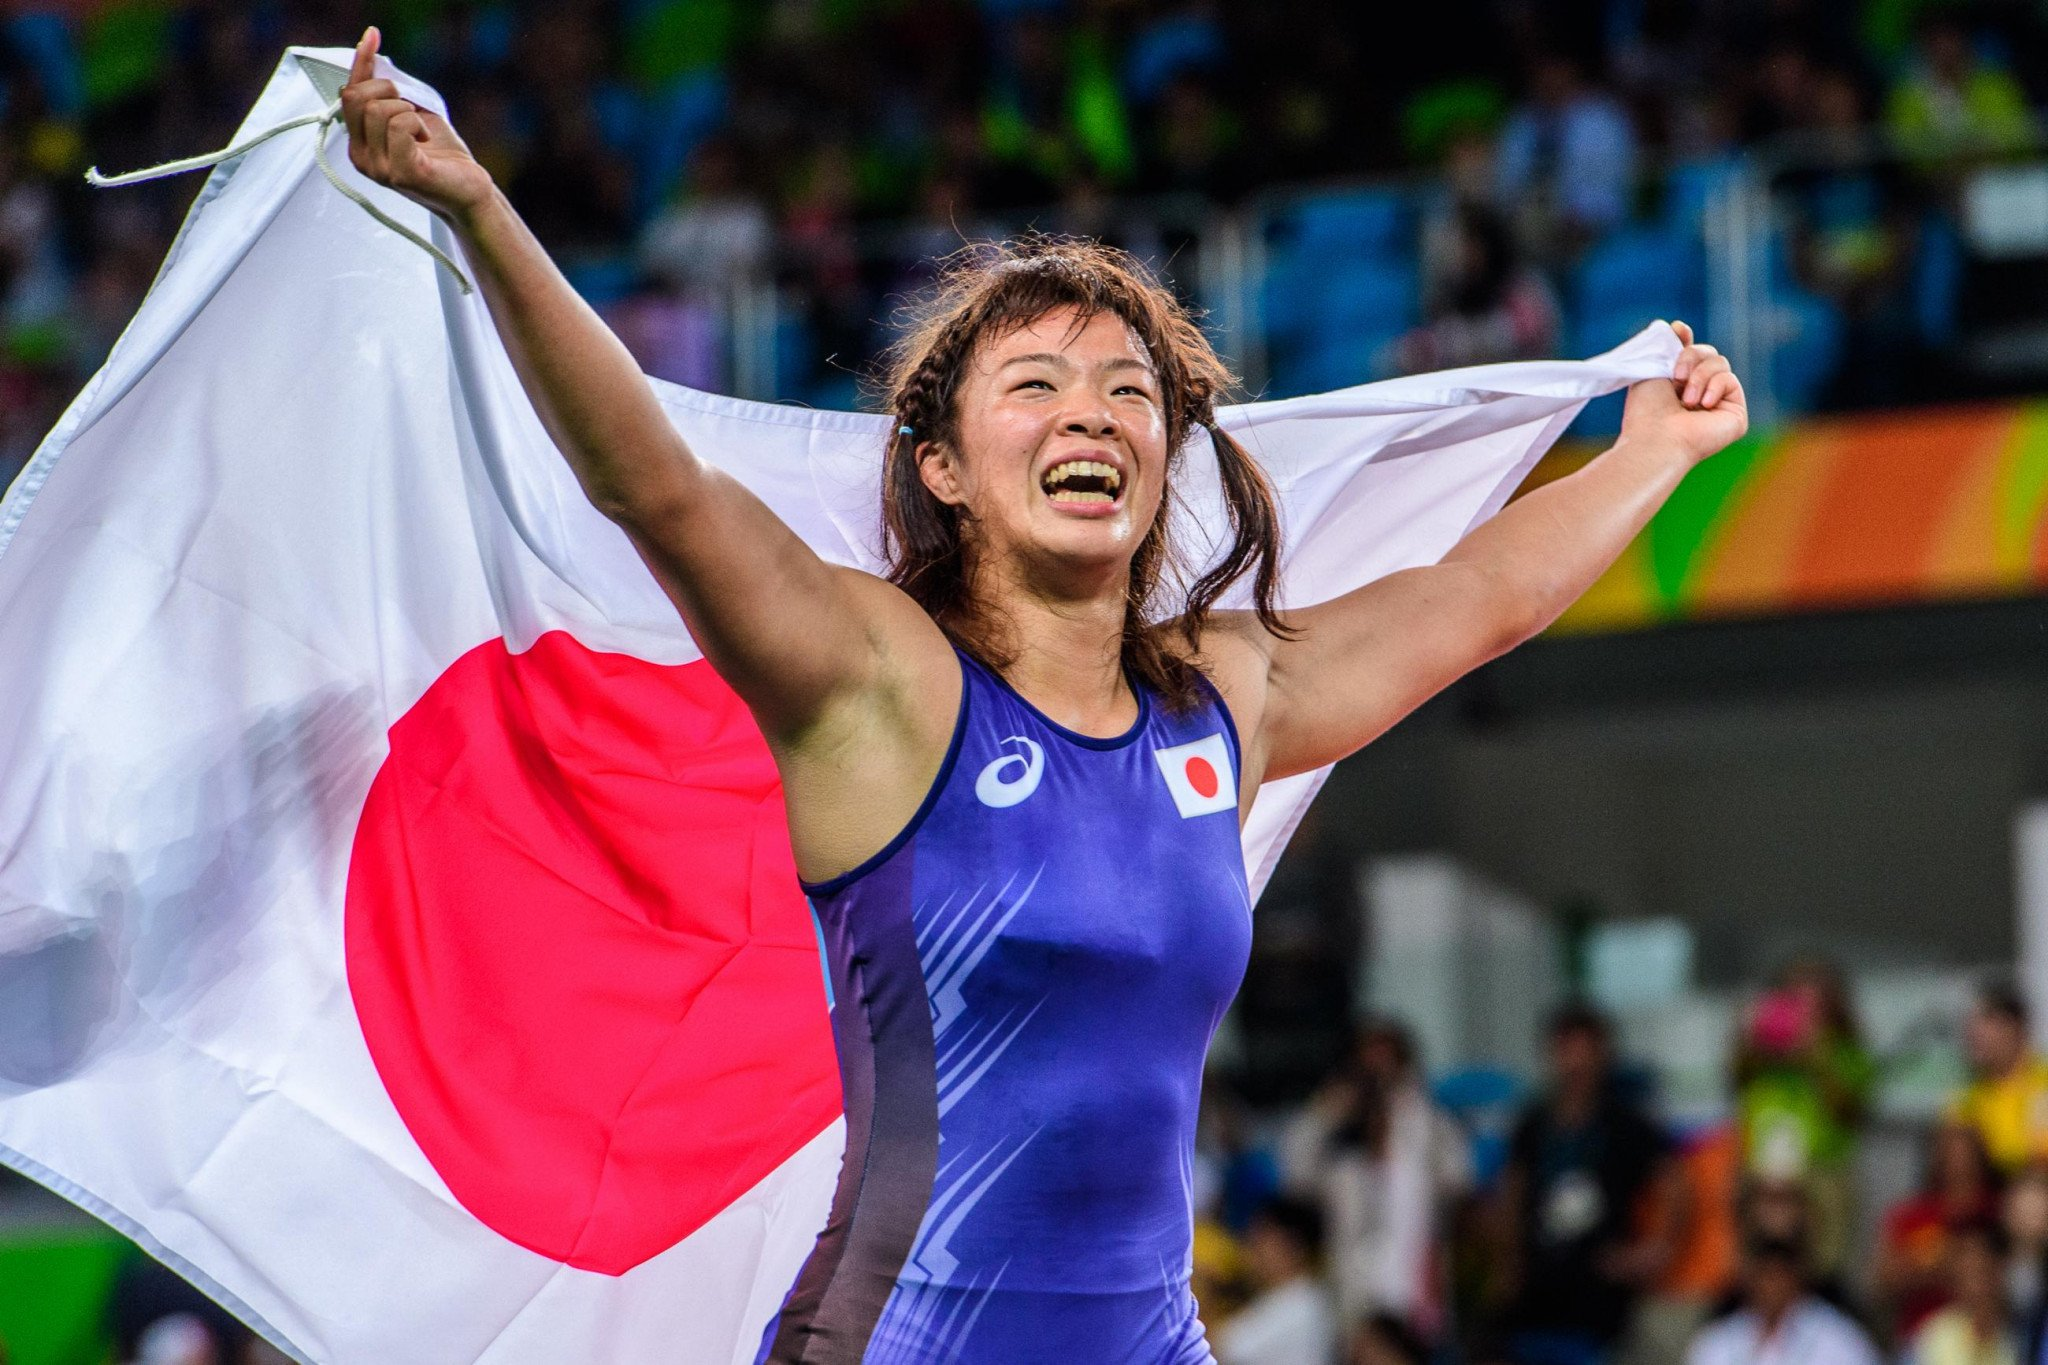 Draws made for women's wrestling and men's freestyle World Cups